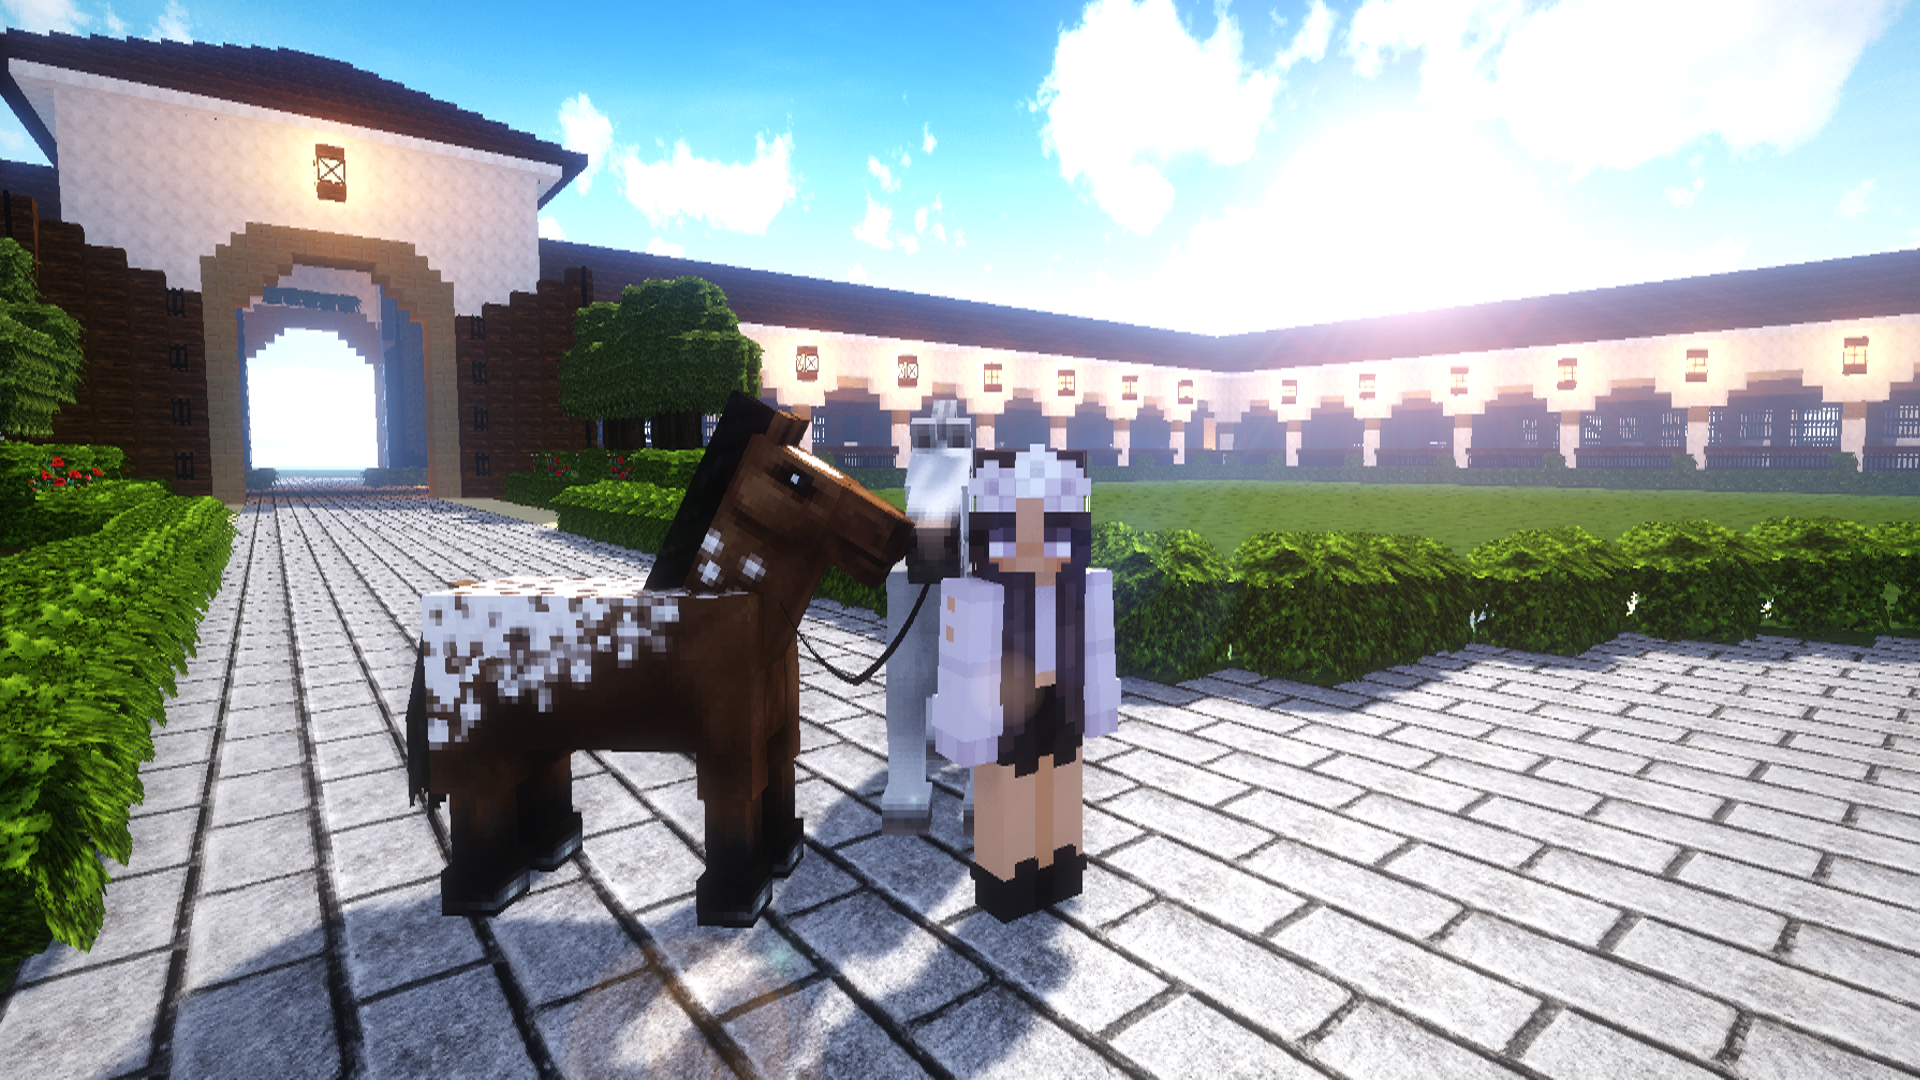 High Horse Stable Minecraft World Payhip